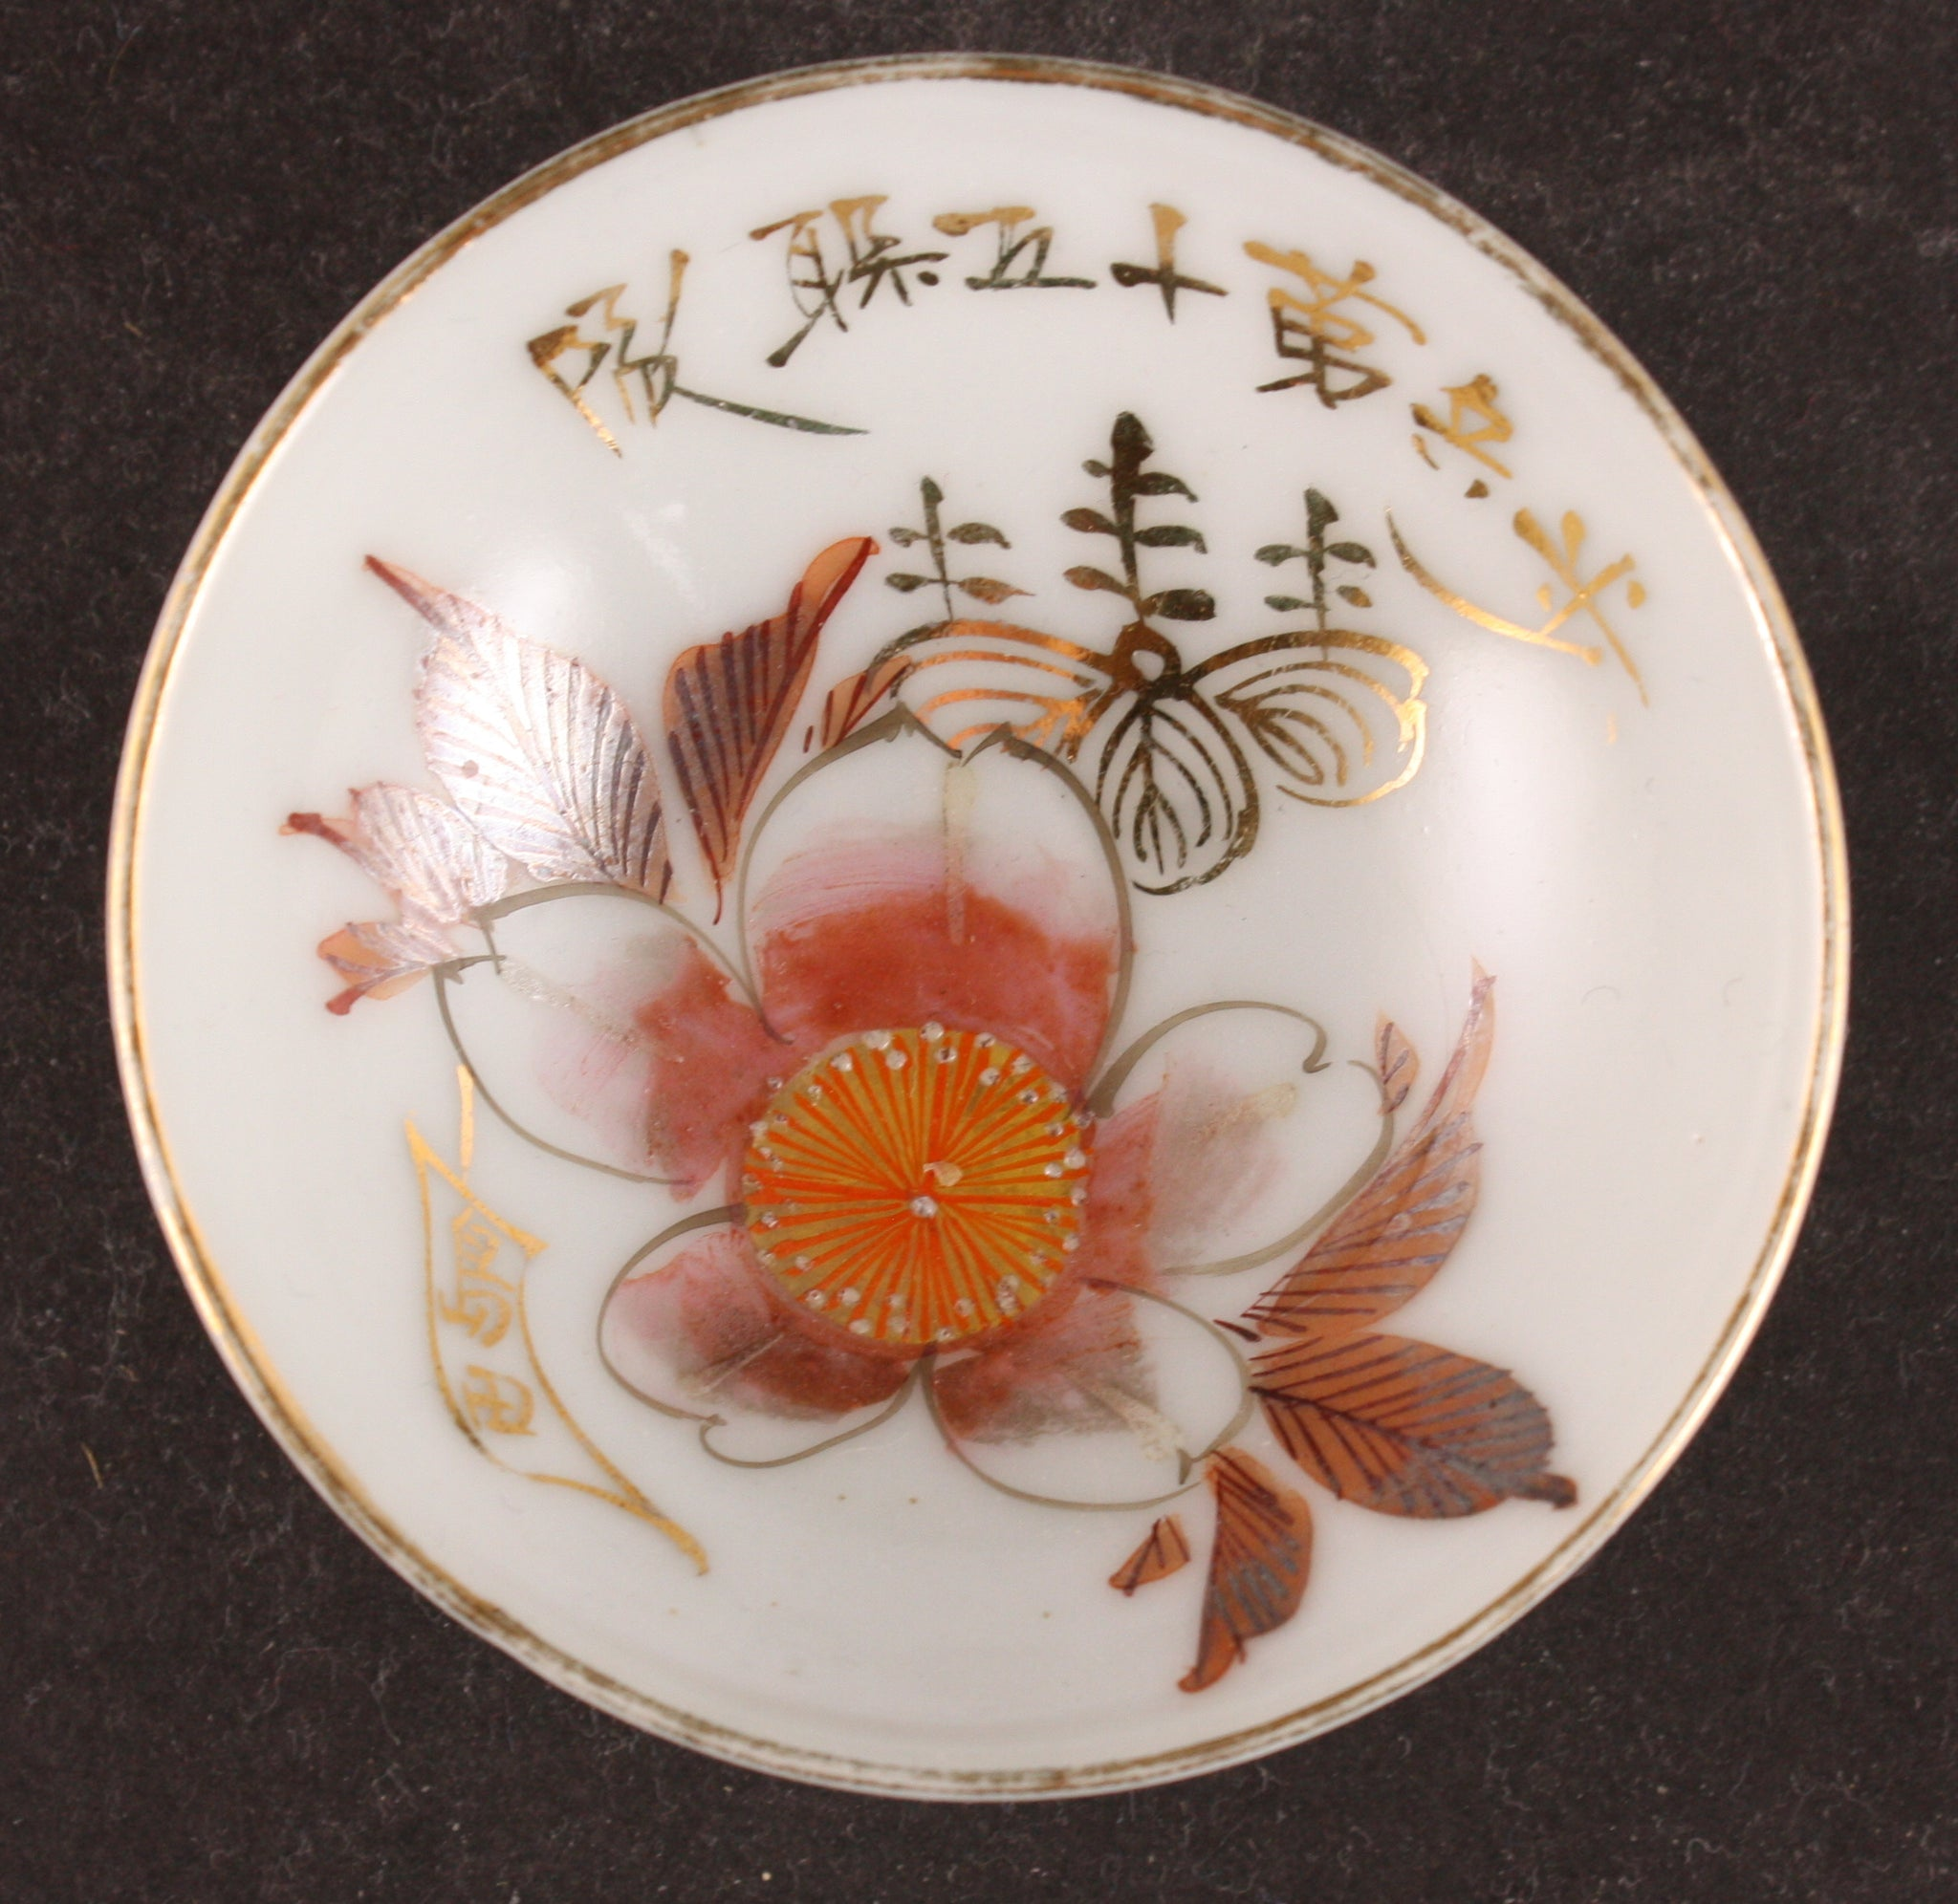 Antique Japanese Military Cherry Blossom Infantry Army Sake Cup